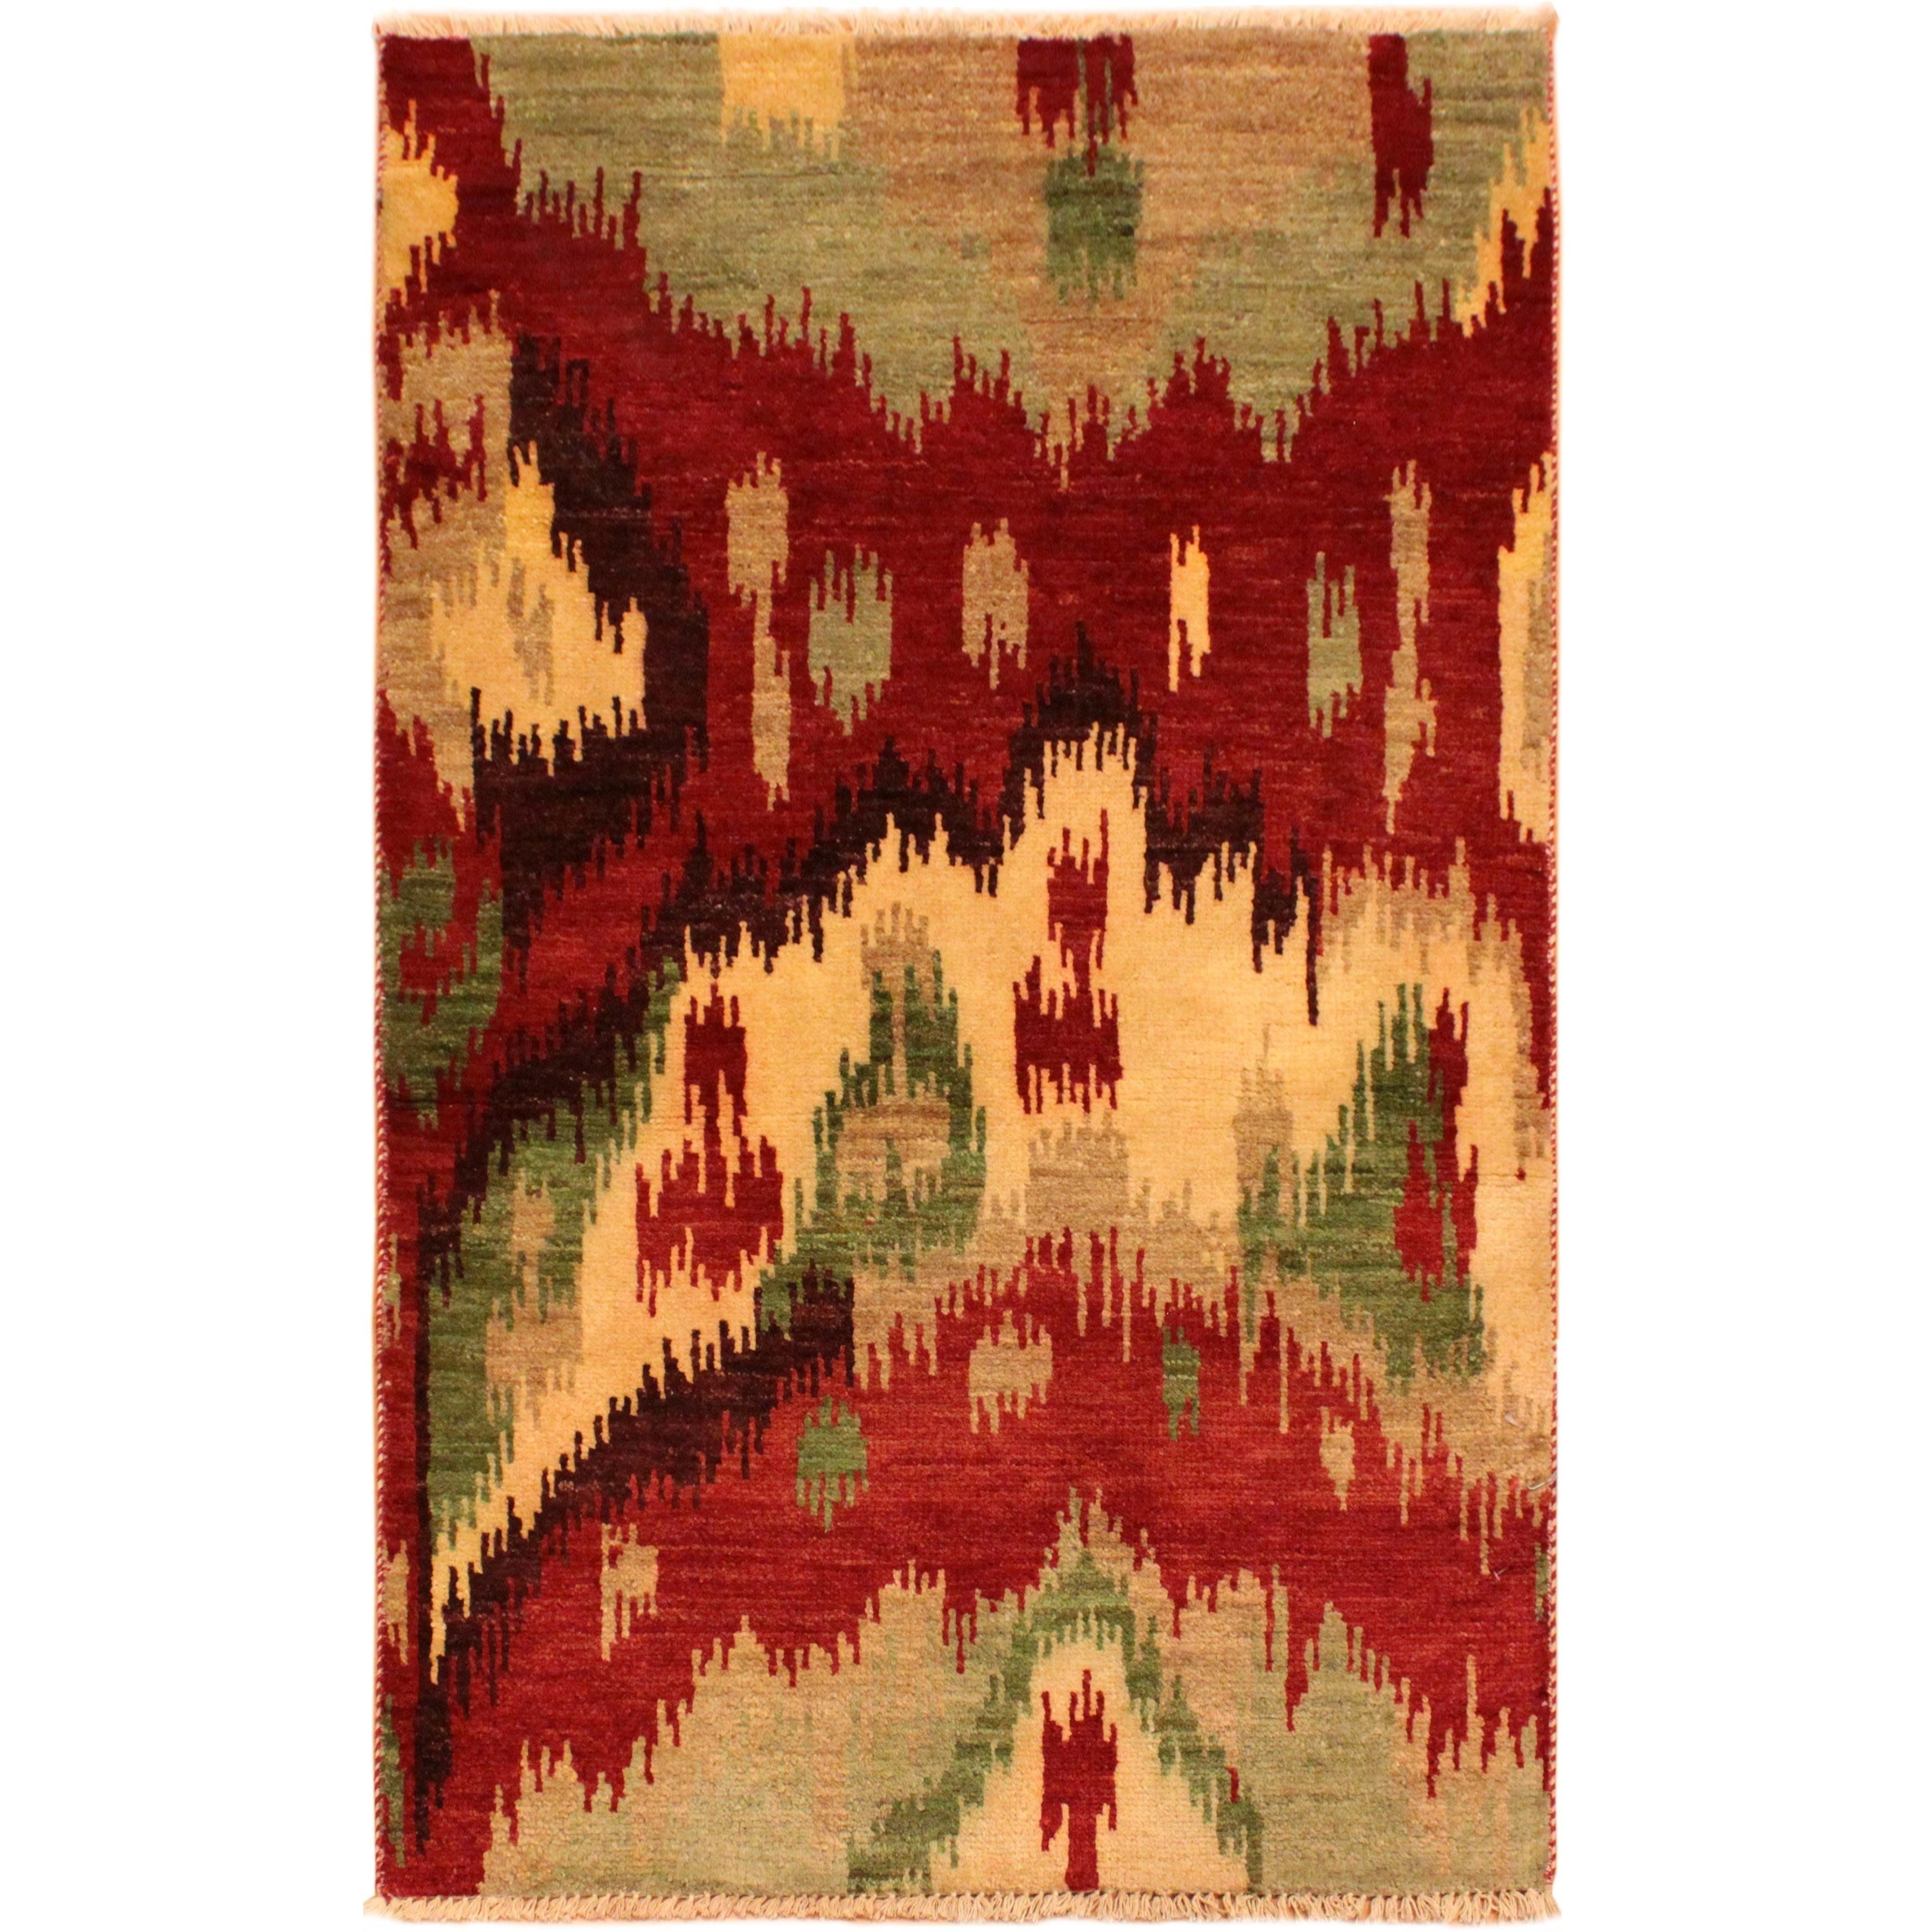 Modern Ikat Barney Red Tan Wool Area Rug 2 11 X 5 0 2 Ft 11